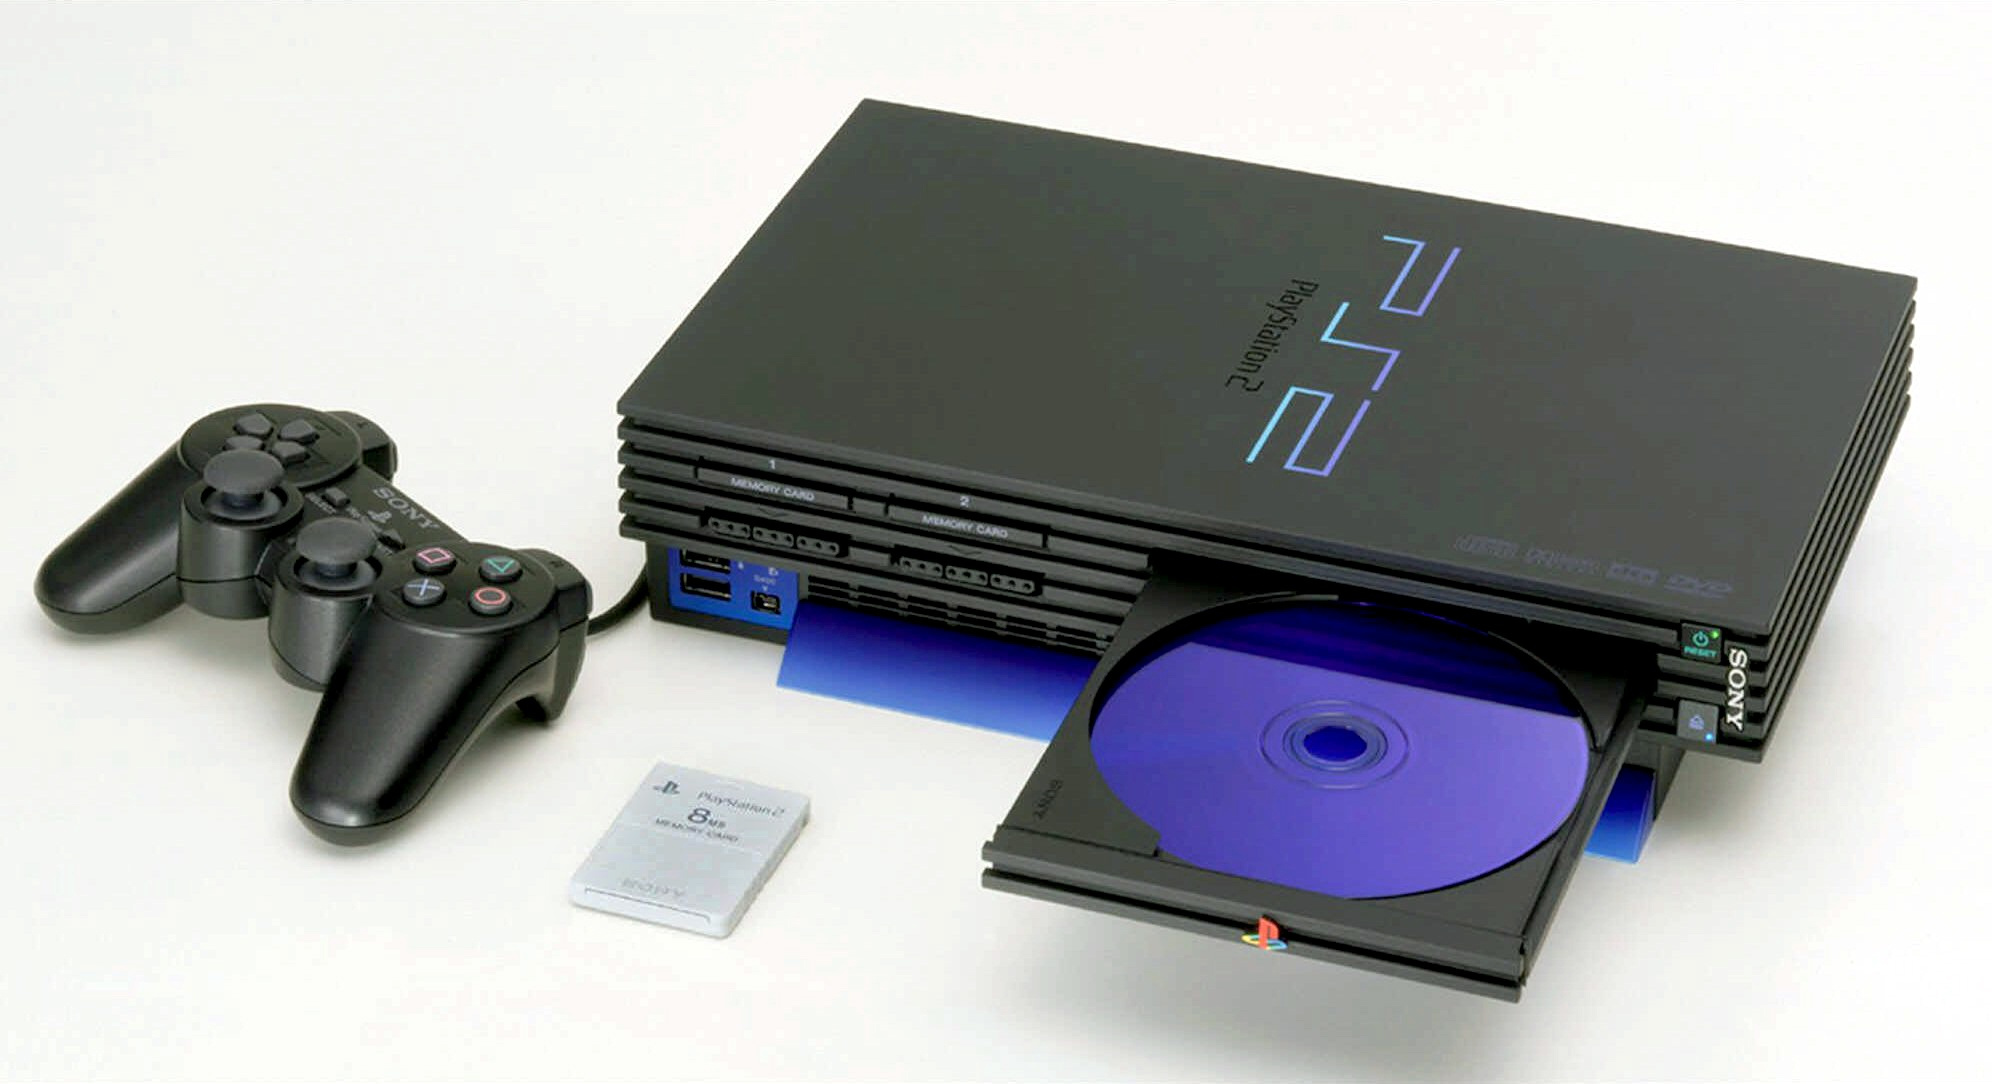 Sony scrapping PS2 aftercare service in Japan